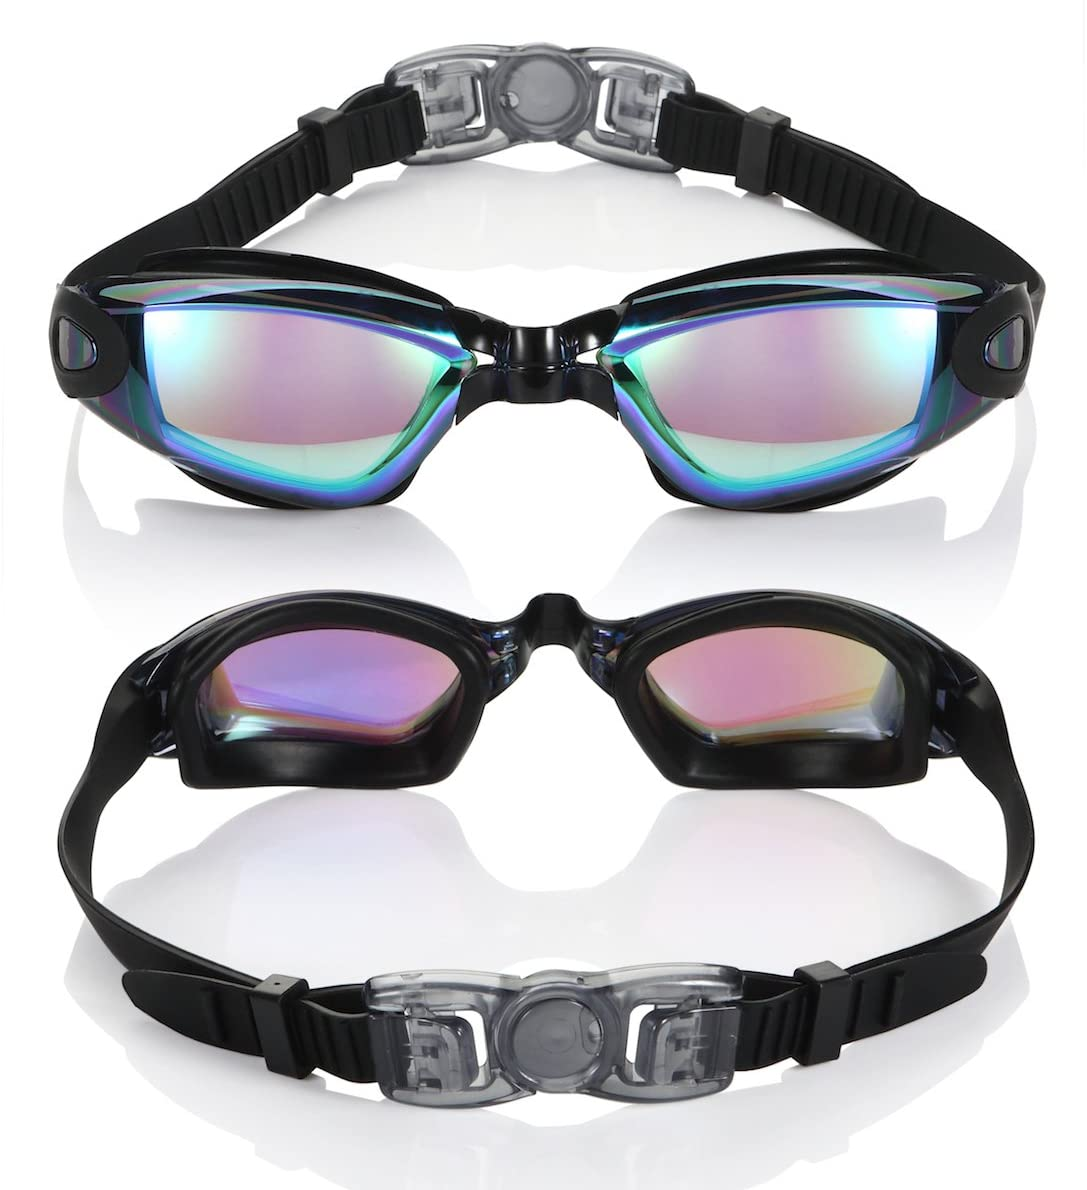 shopify-Anti-Fog Unisex Swim Goggles with Protective Case- 3 Colors-1